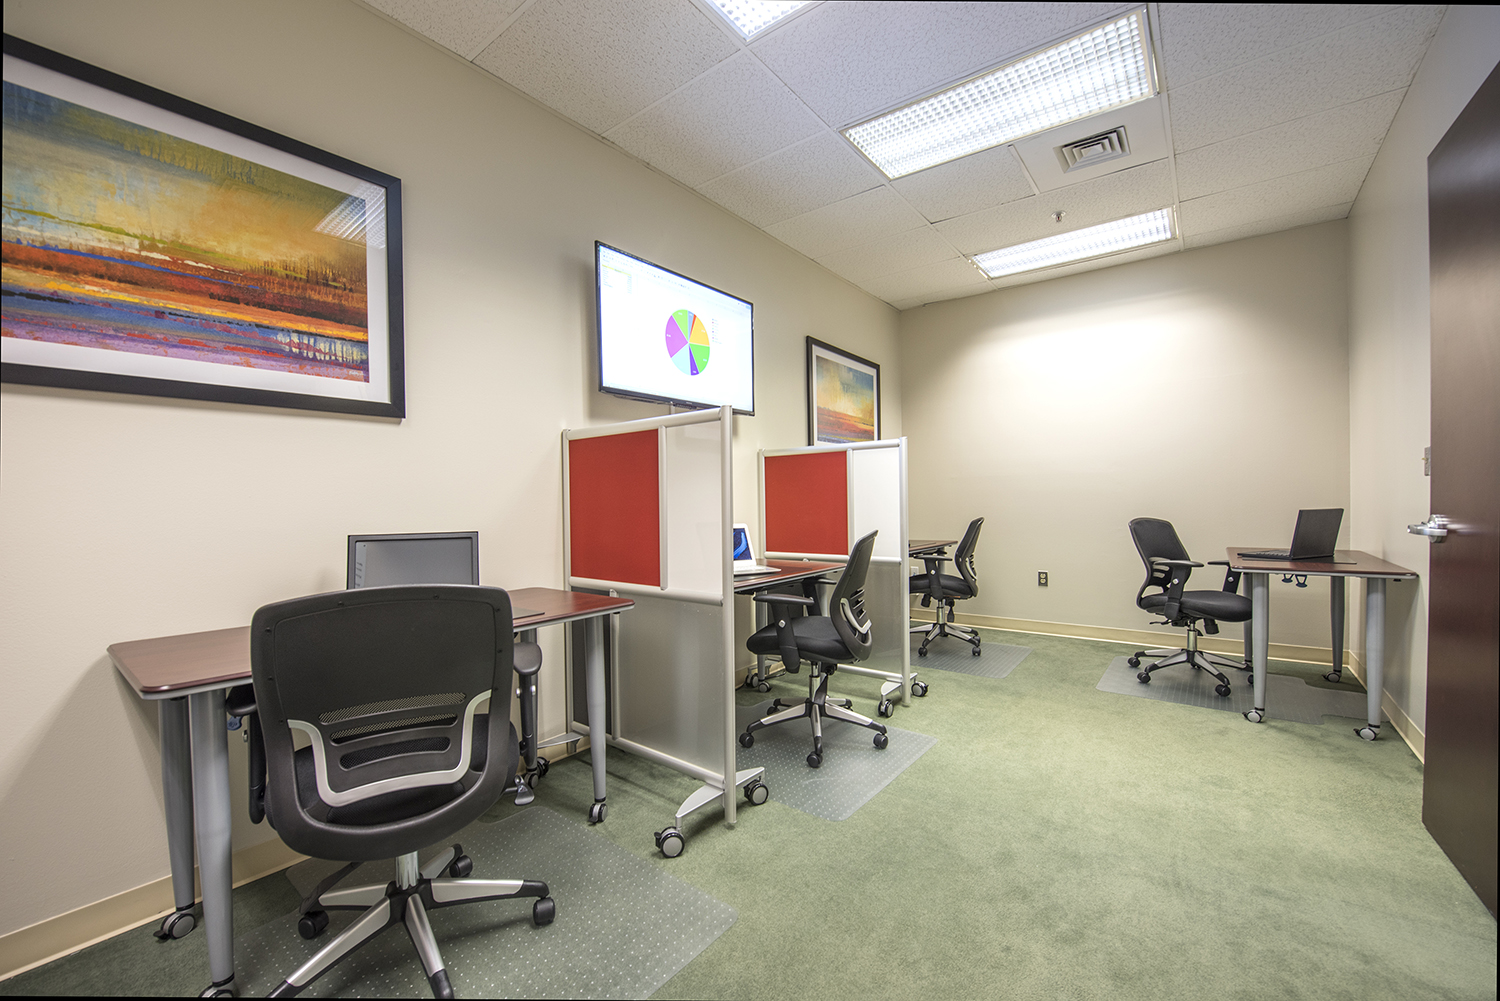 temp office space. Schedule A Tour Of Our Bala Cynwyd Office Temp Space N